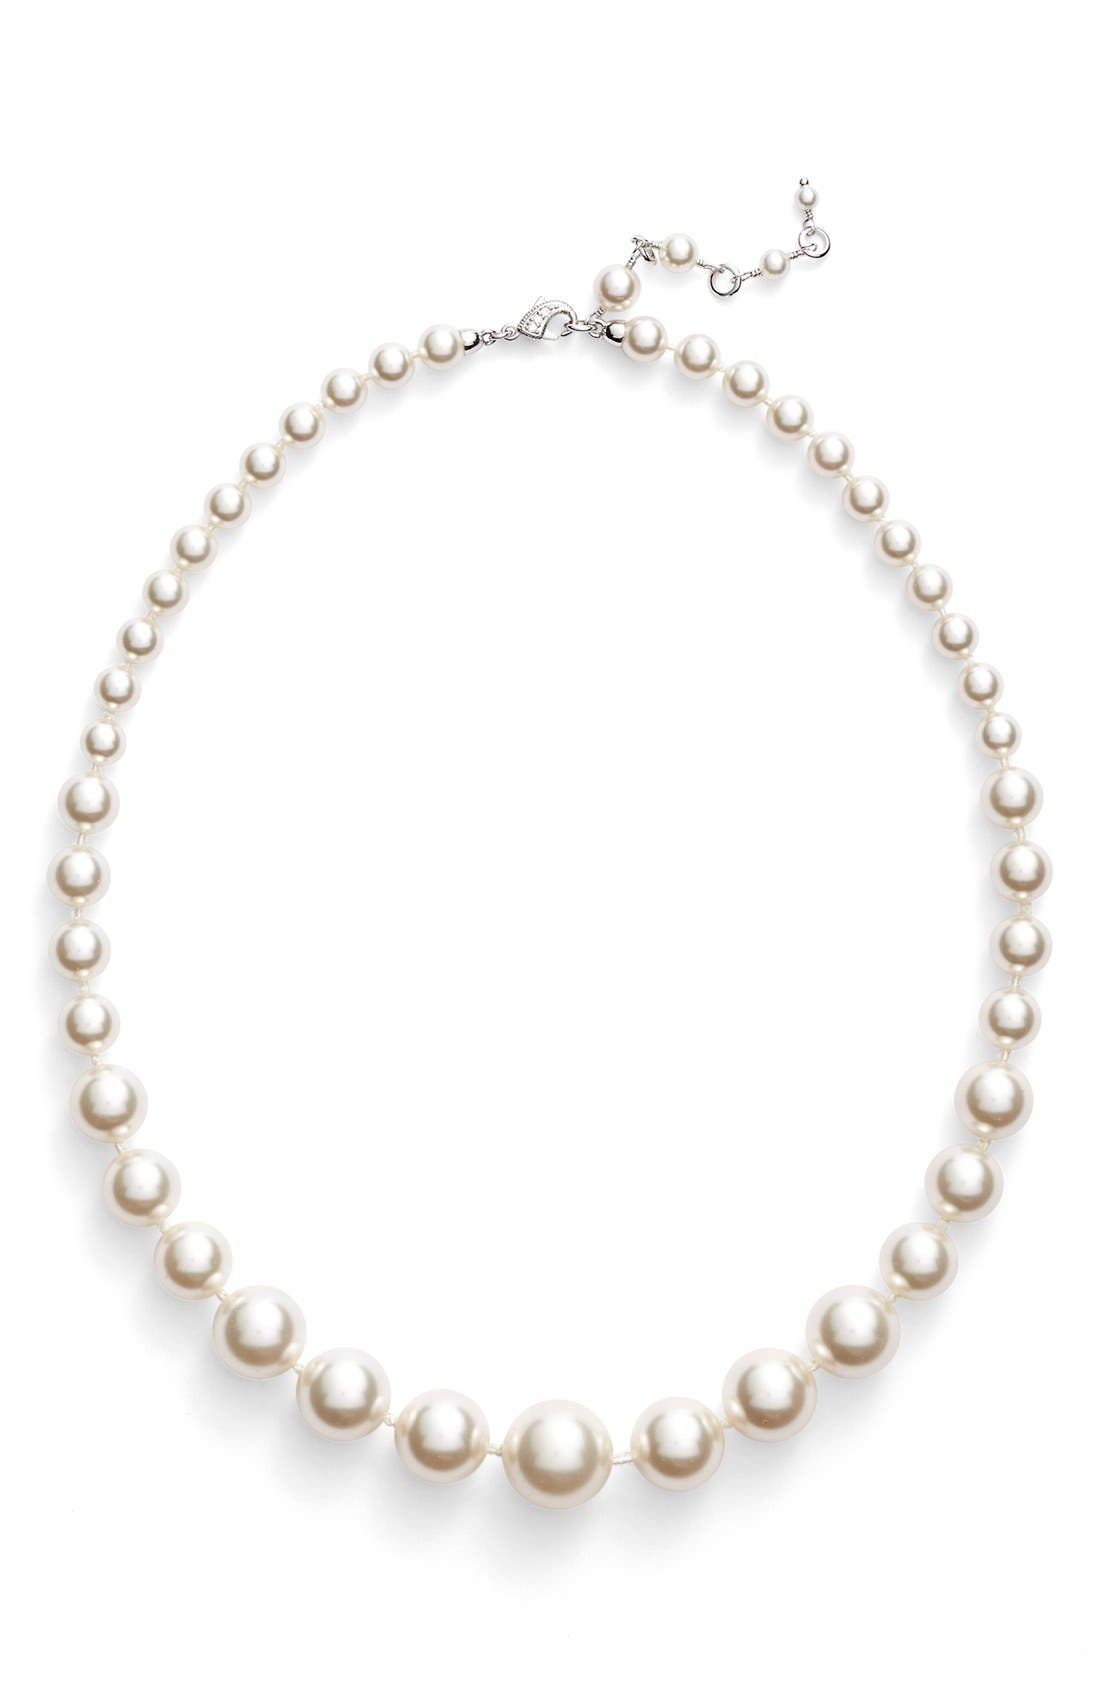 Graduated Imitation Pearl Necklace,                             Alternate thumbnail 2, color,                             Ivory